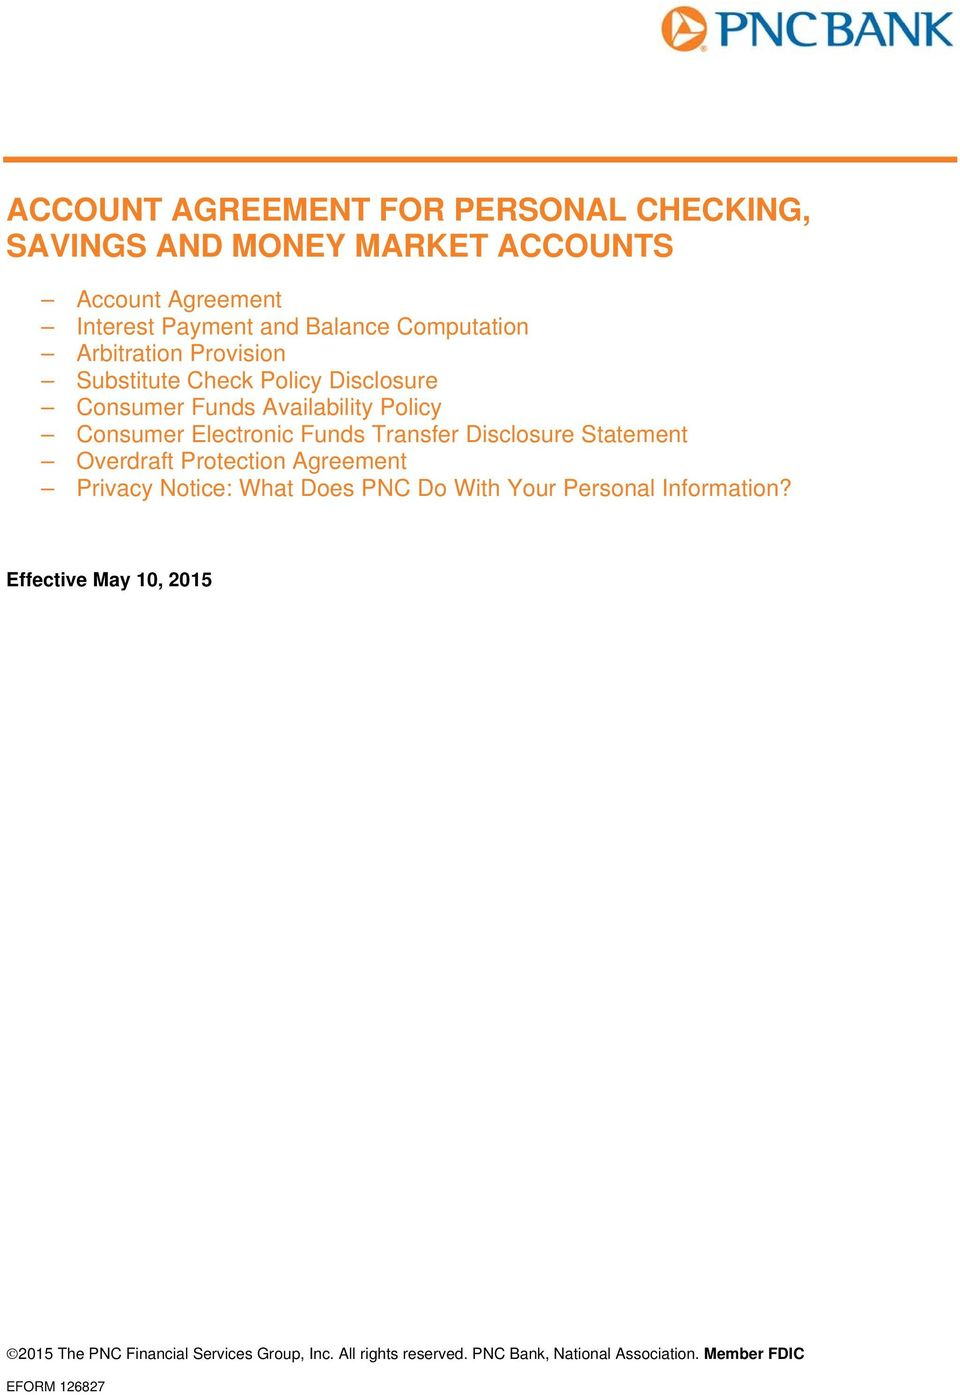 ACCOUNT AGREEMENT FOR PERSONAL CHECKING, SAVINGS AND MONEY MARKET